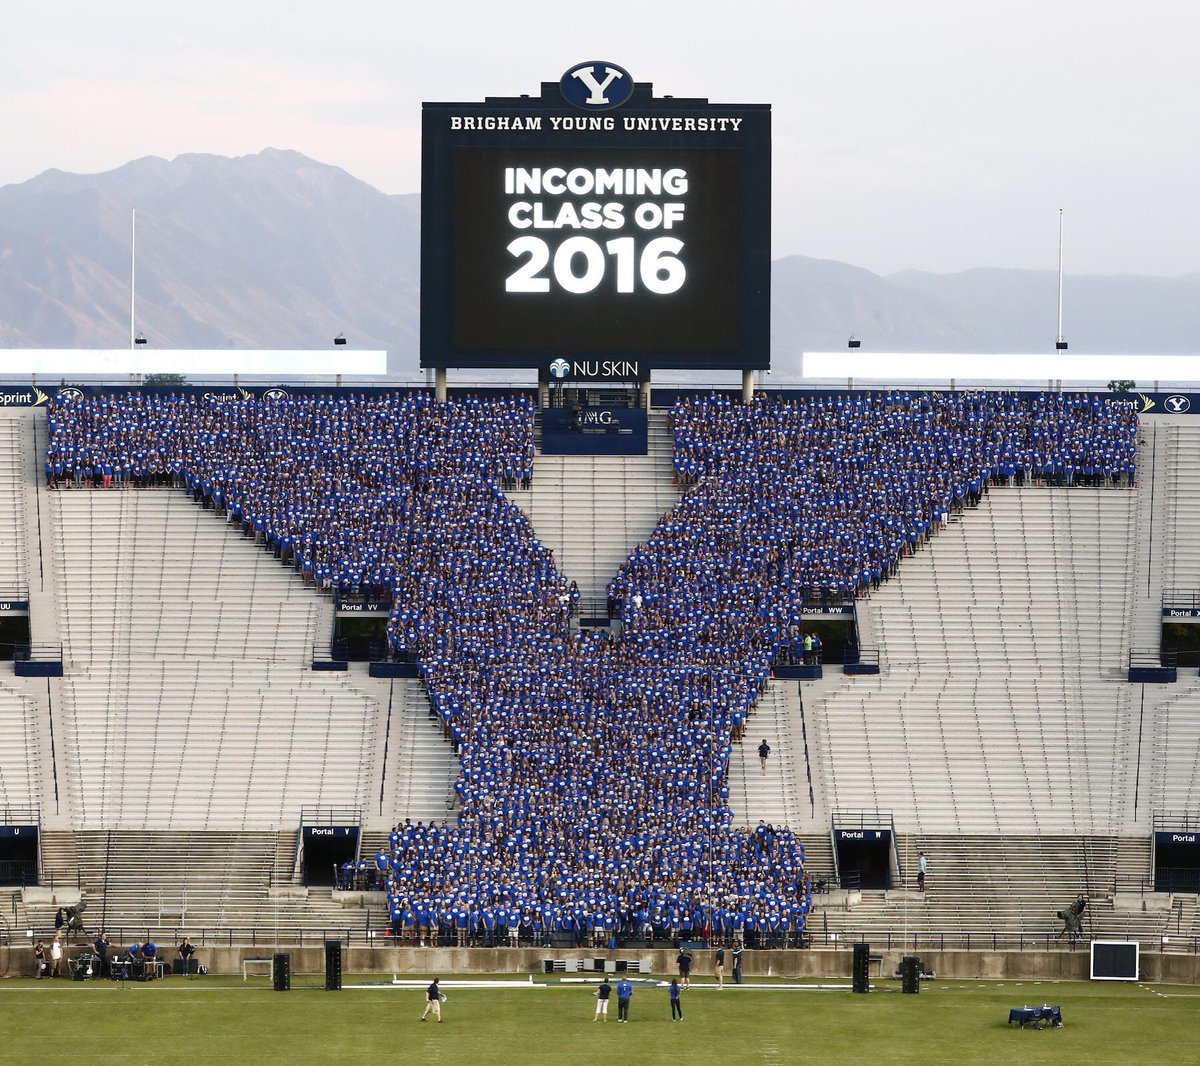 BYU incoming class of 2016, you are the Y! #BYU #BYUBound #BYUNSO https://t.co/oL2u0ErLr8